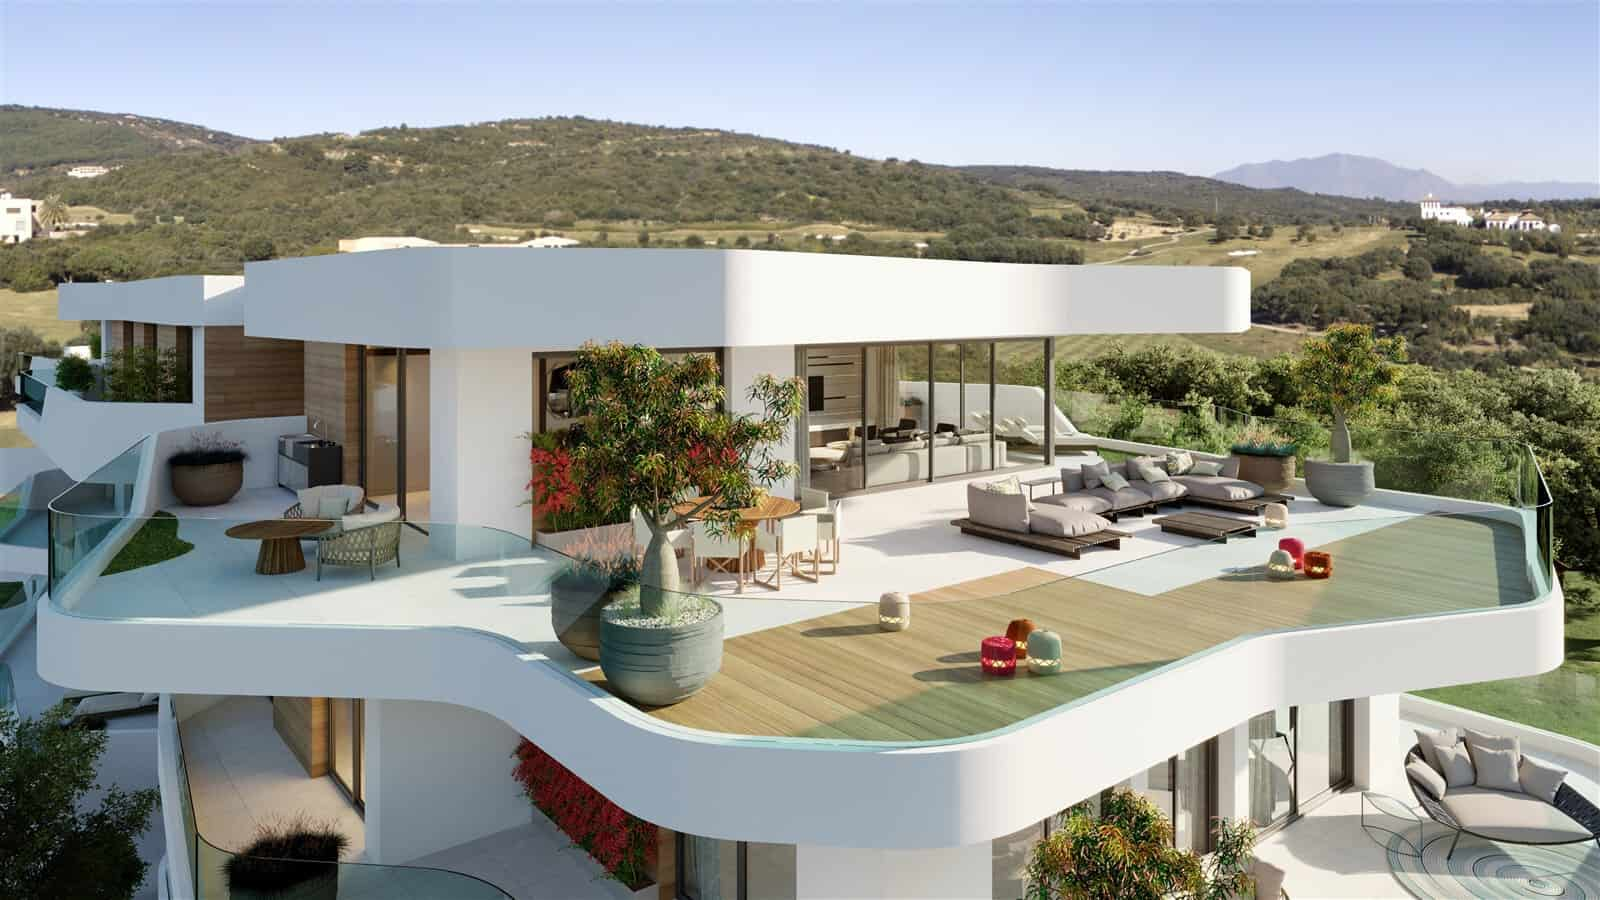 EXTRAORDINARY HOMES IN A STUNNING SETTING